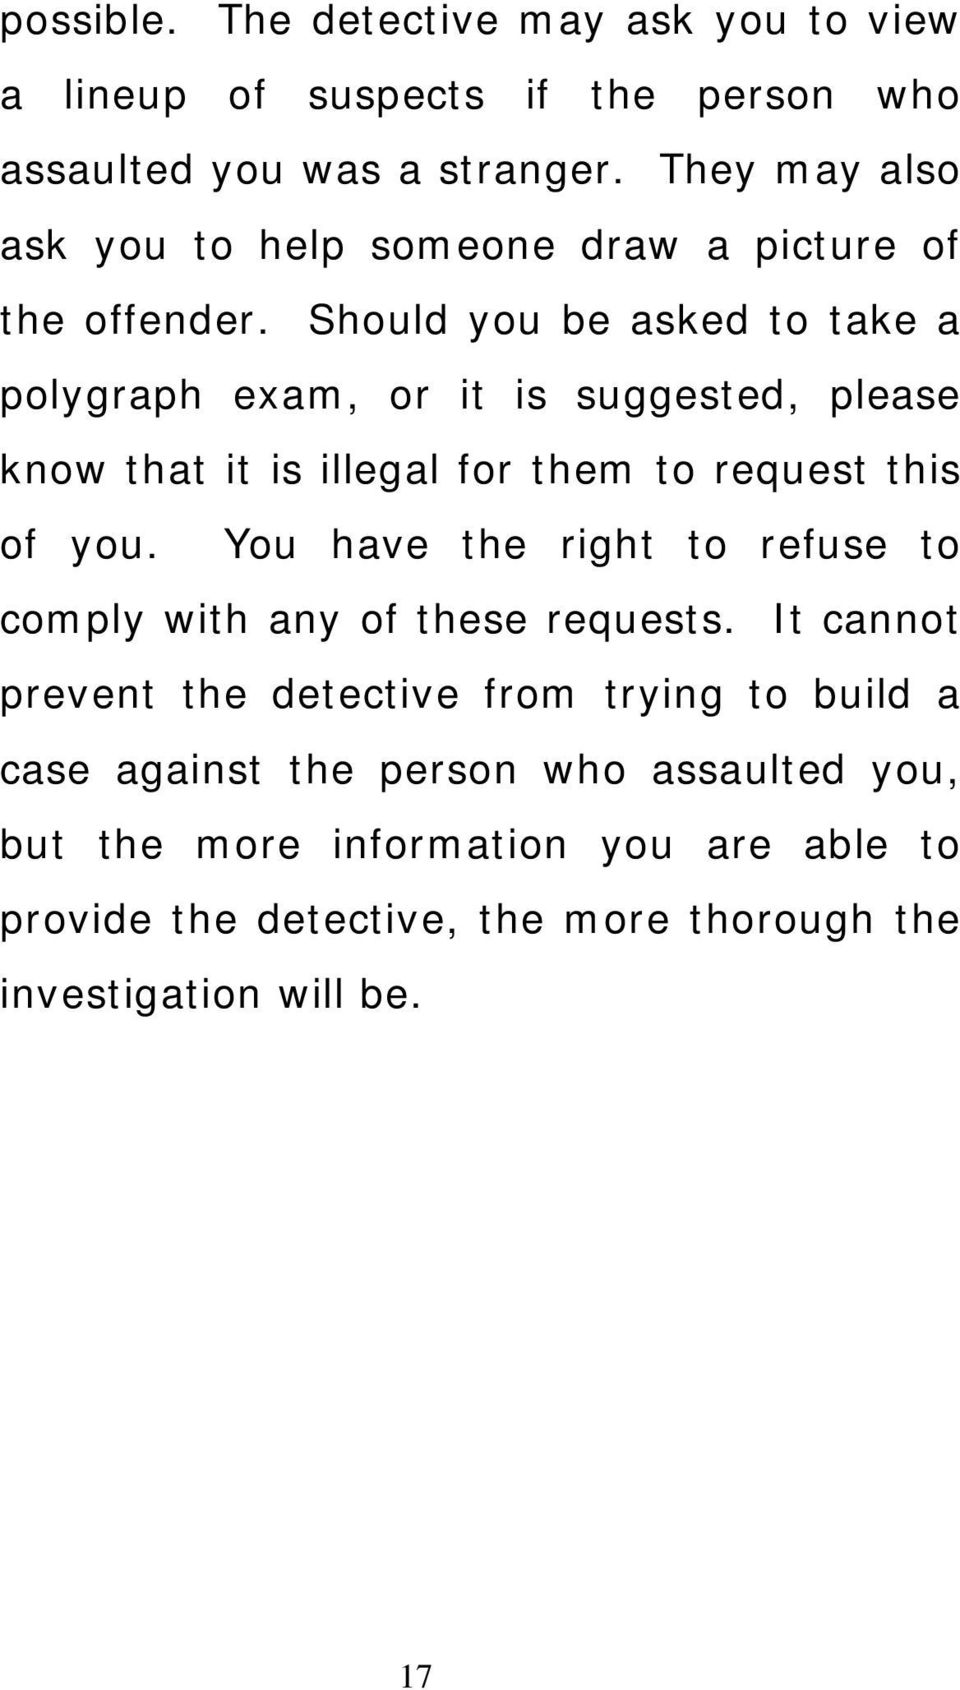 Should you be asked to take a polygraph exam, or it is suggested, please know that it is illegal for them to request this of you.